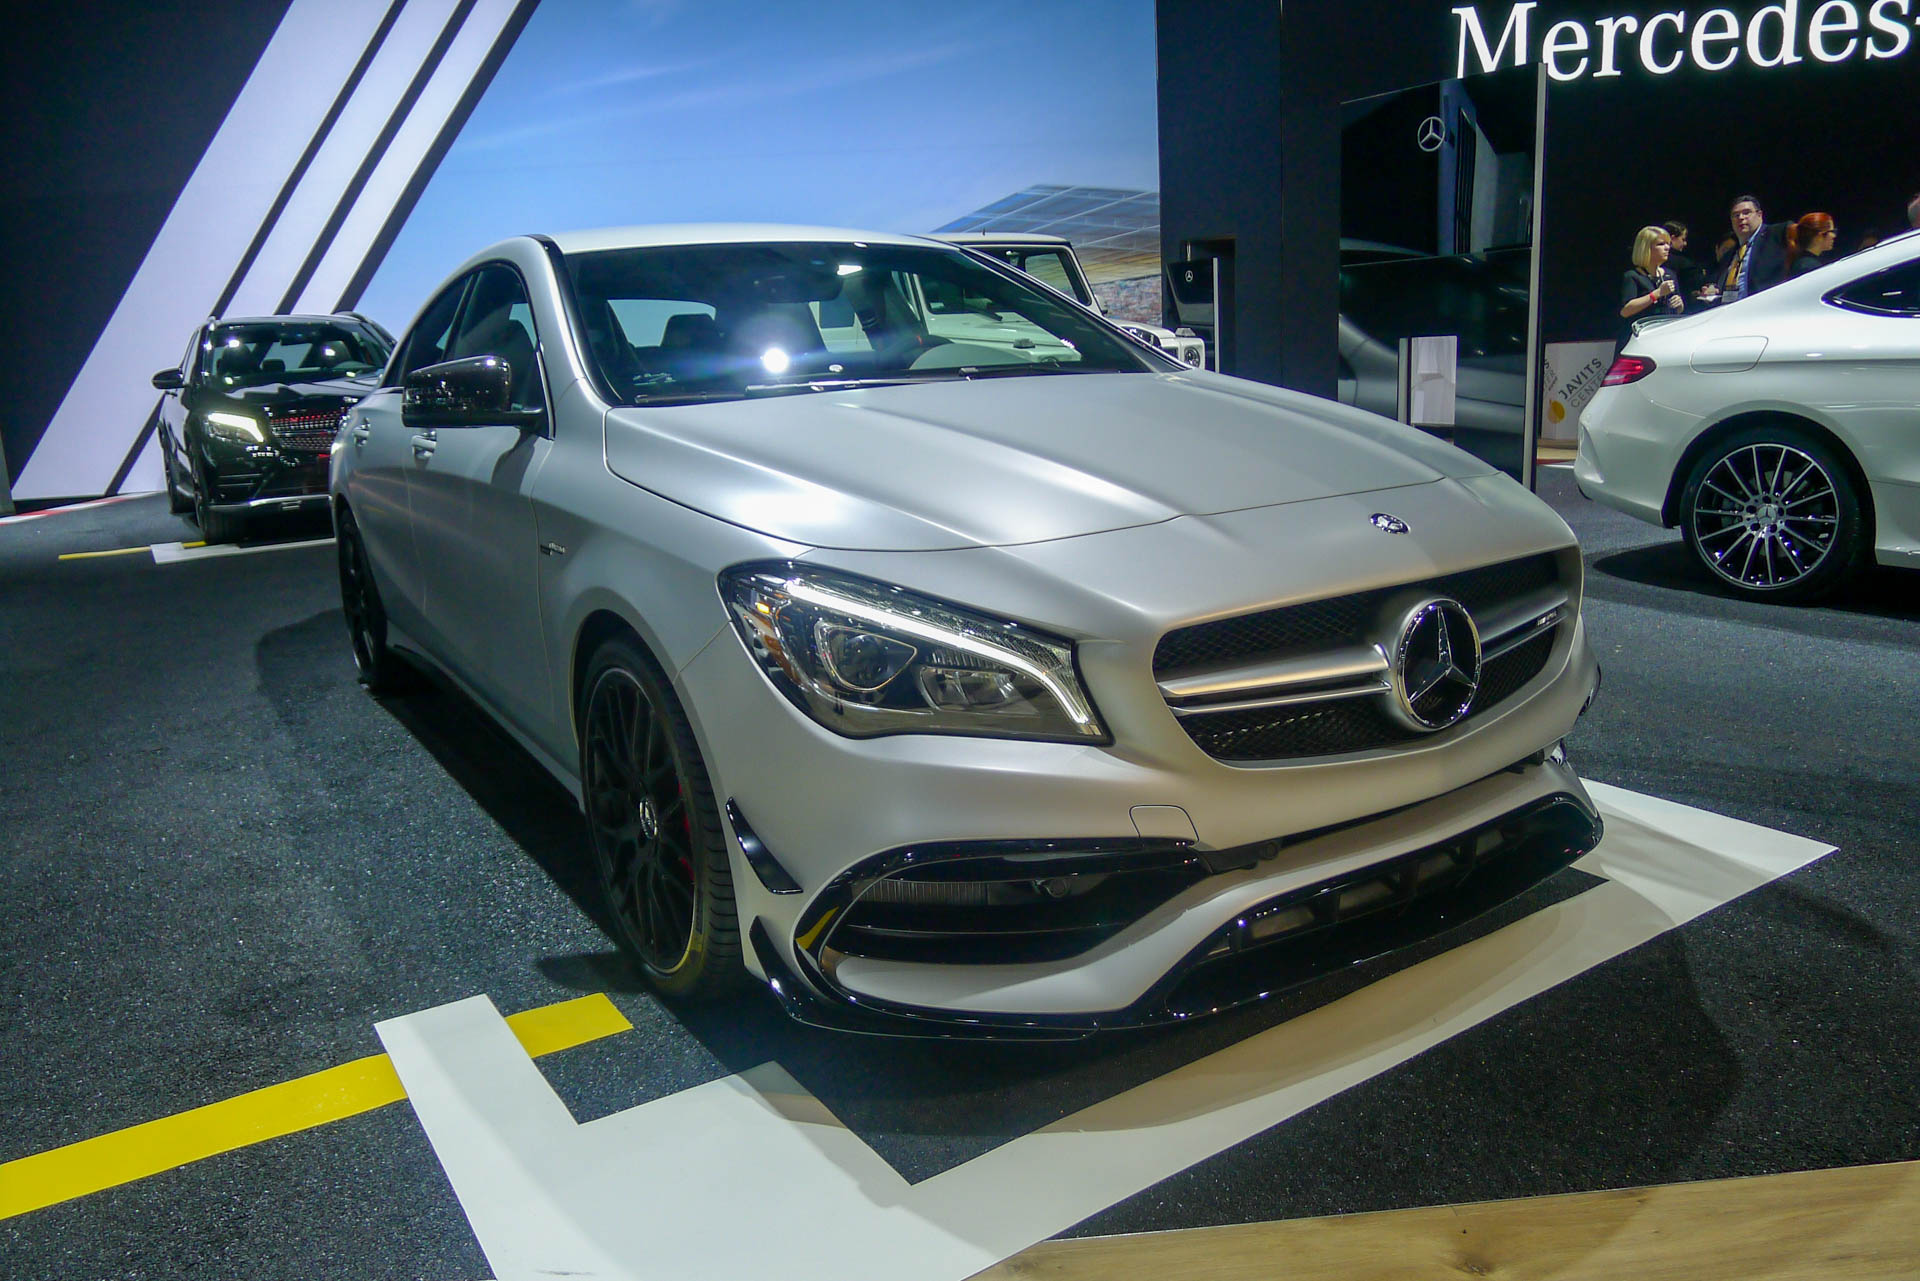 2017 mercedes benz cla gets updates inside and out live photos and video. Black Bedroom Furniture Sets. Home Design Ideas